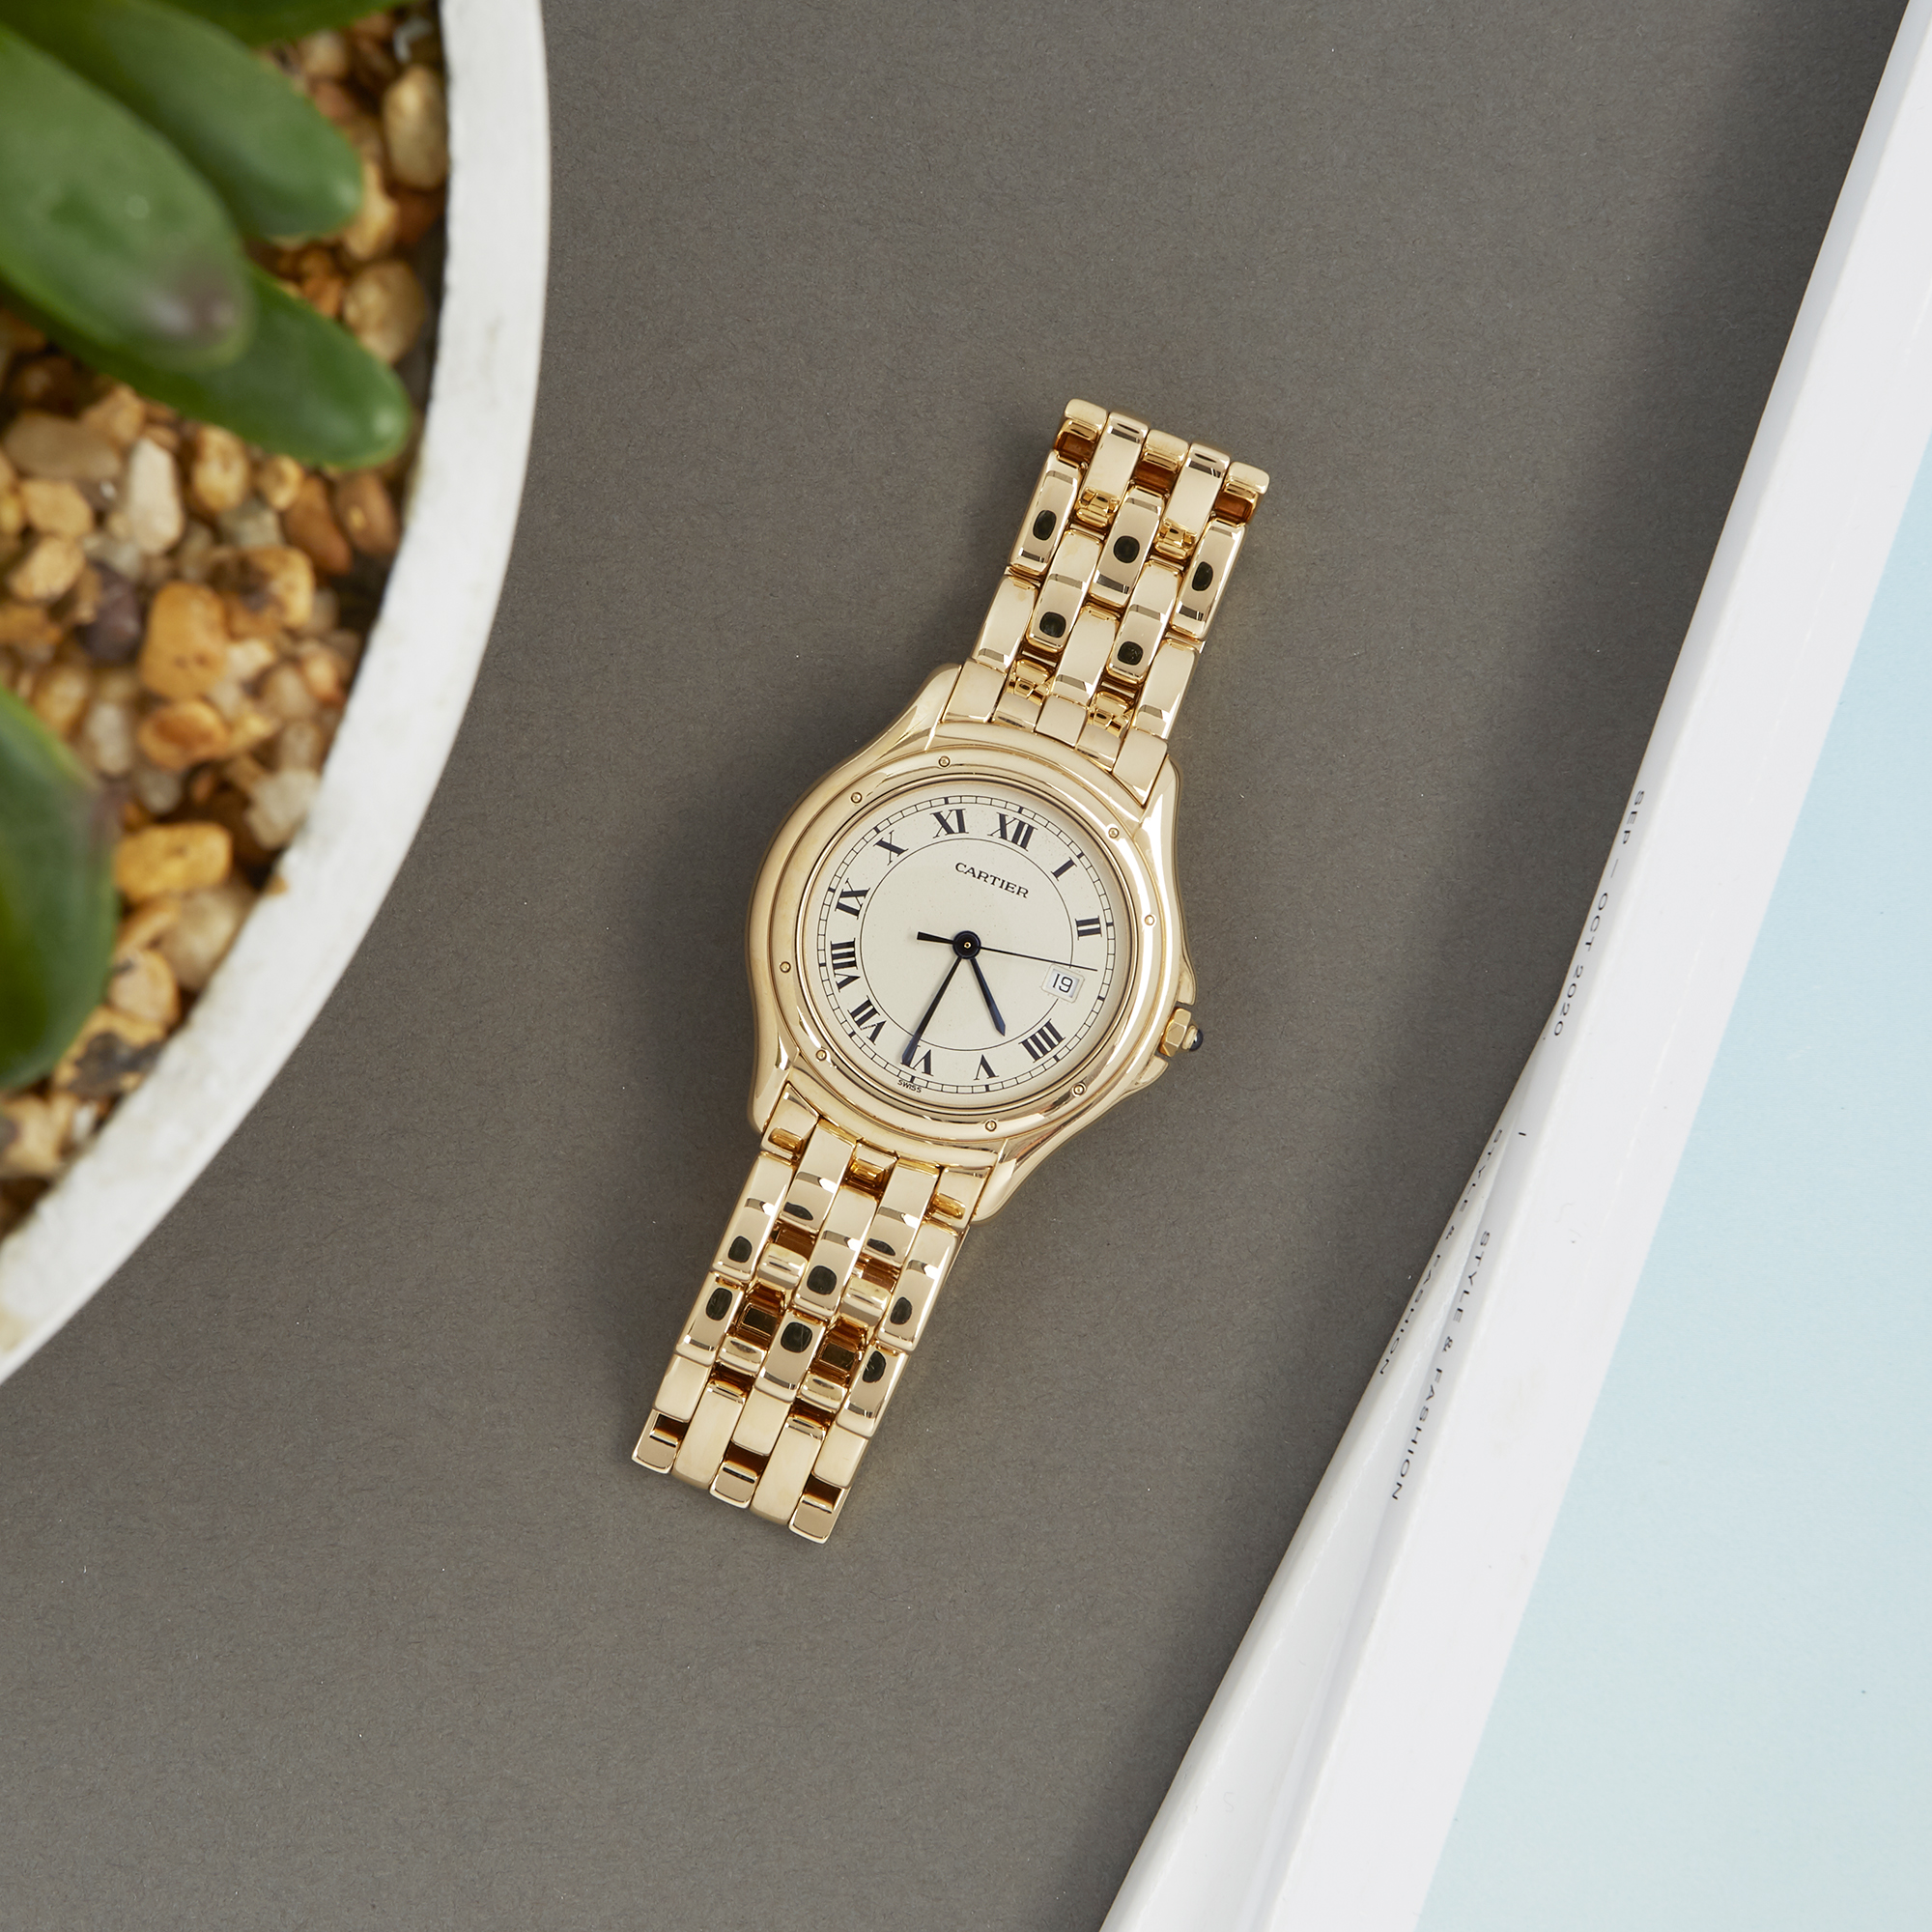 Cartier Panthère Cougar 116000R Unisex Yellow Gold Watch - Image 2 of 8